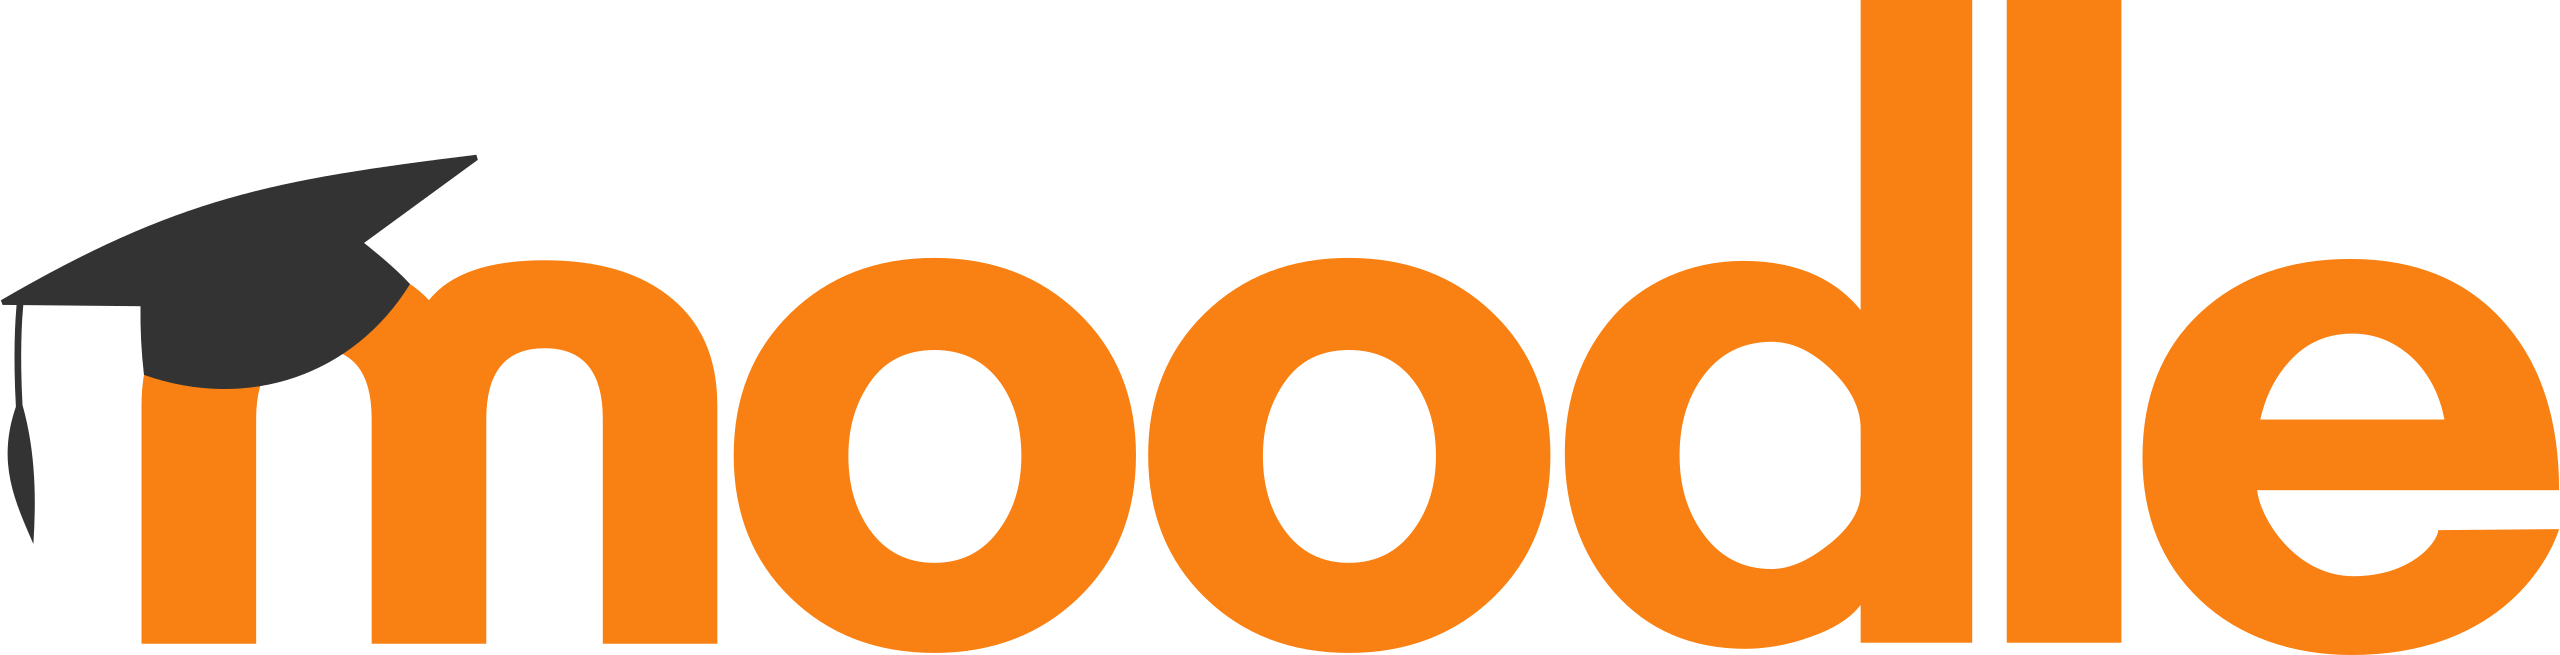 https://upload.wikimedia.org/wikipedia/commons/thumb/c/c6/Moodle-logo.svg/2560px-Moodle-logo.svg.png